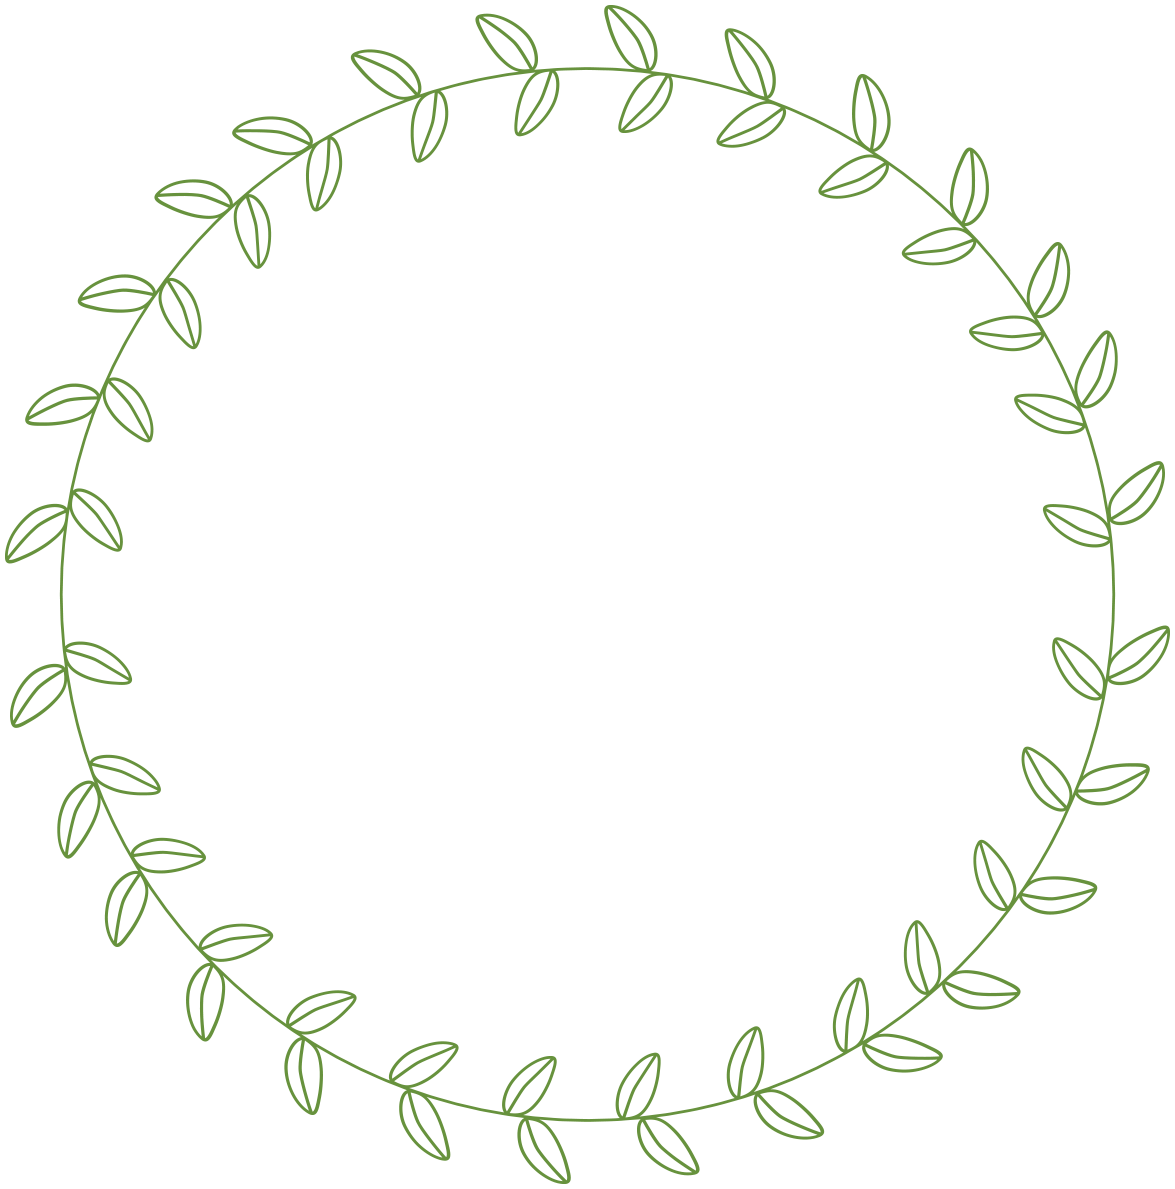 Leaves clipart circle #5